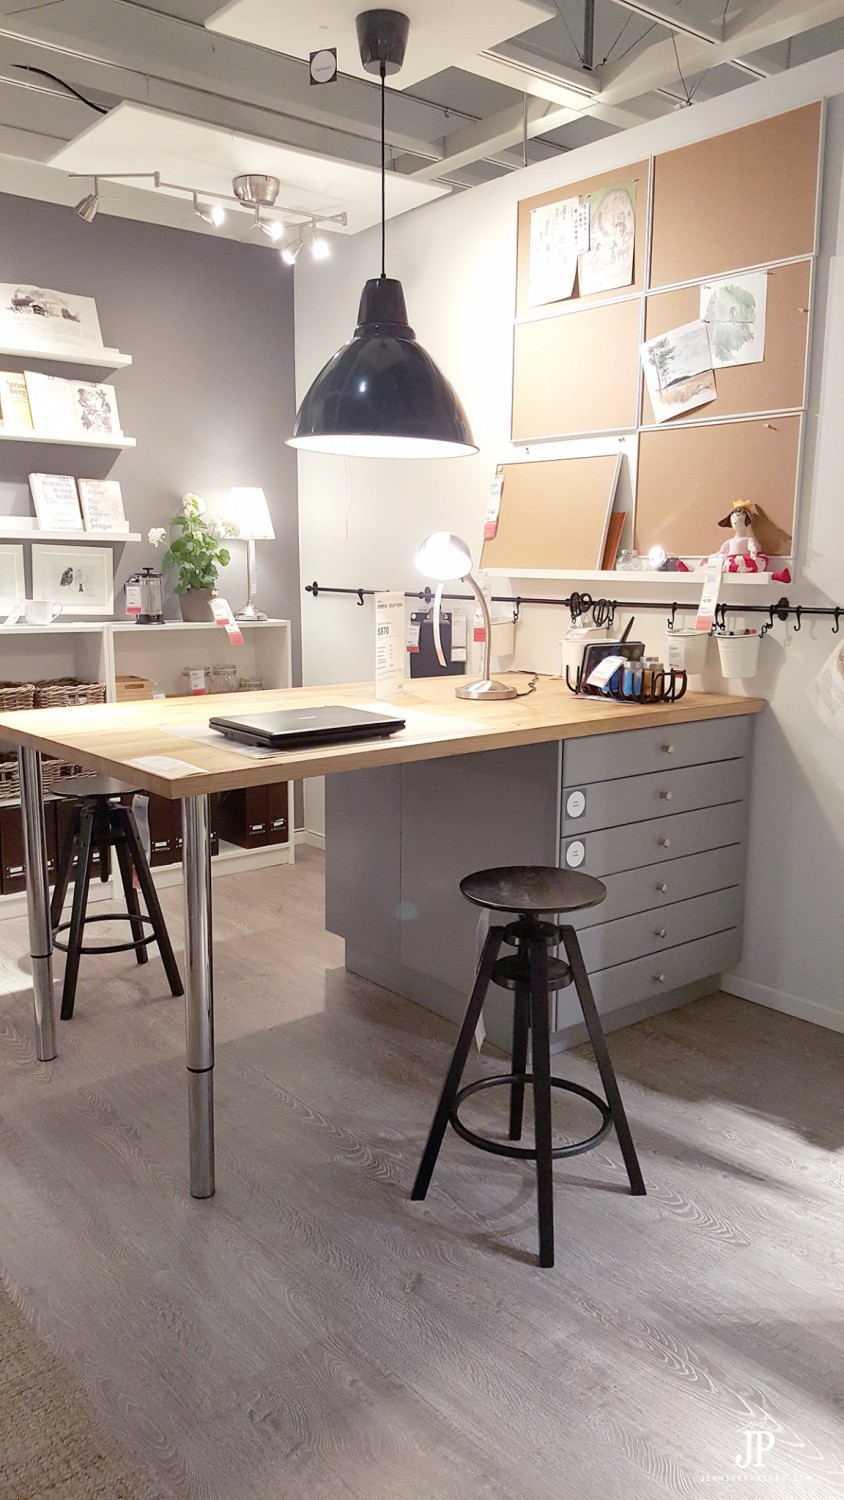 The BEST Ikea Craft Rooms Organizing Ideas   This Is A Craft Room Inside An  IKEA